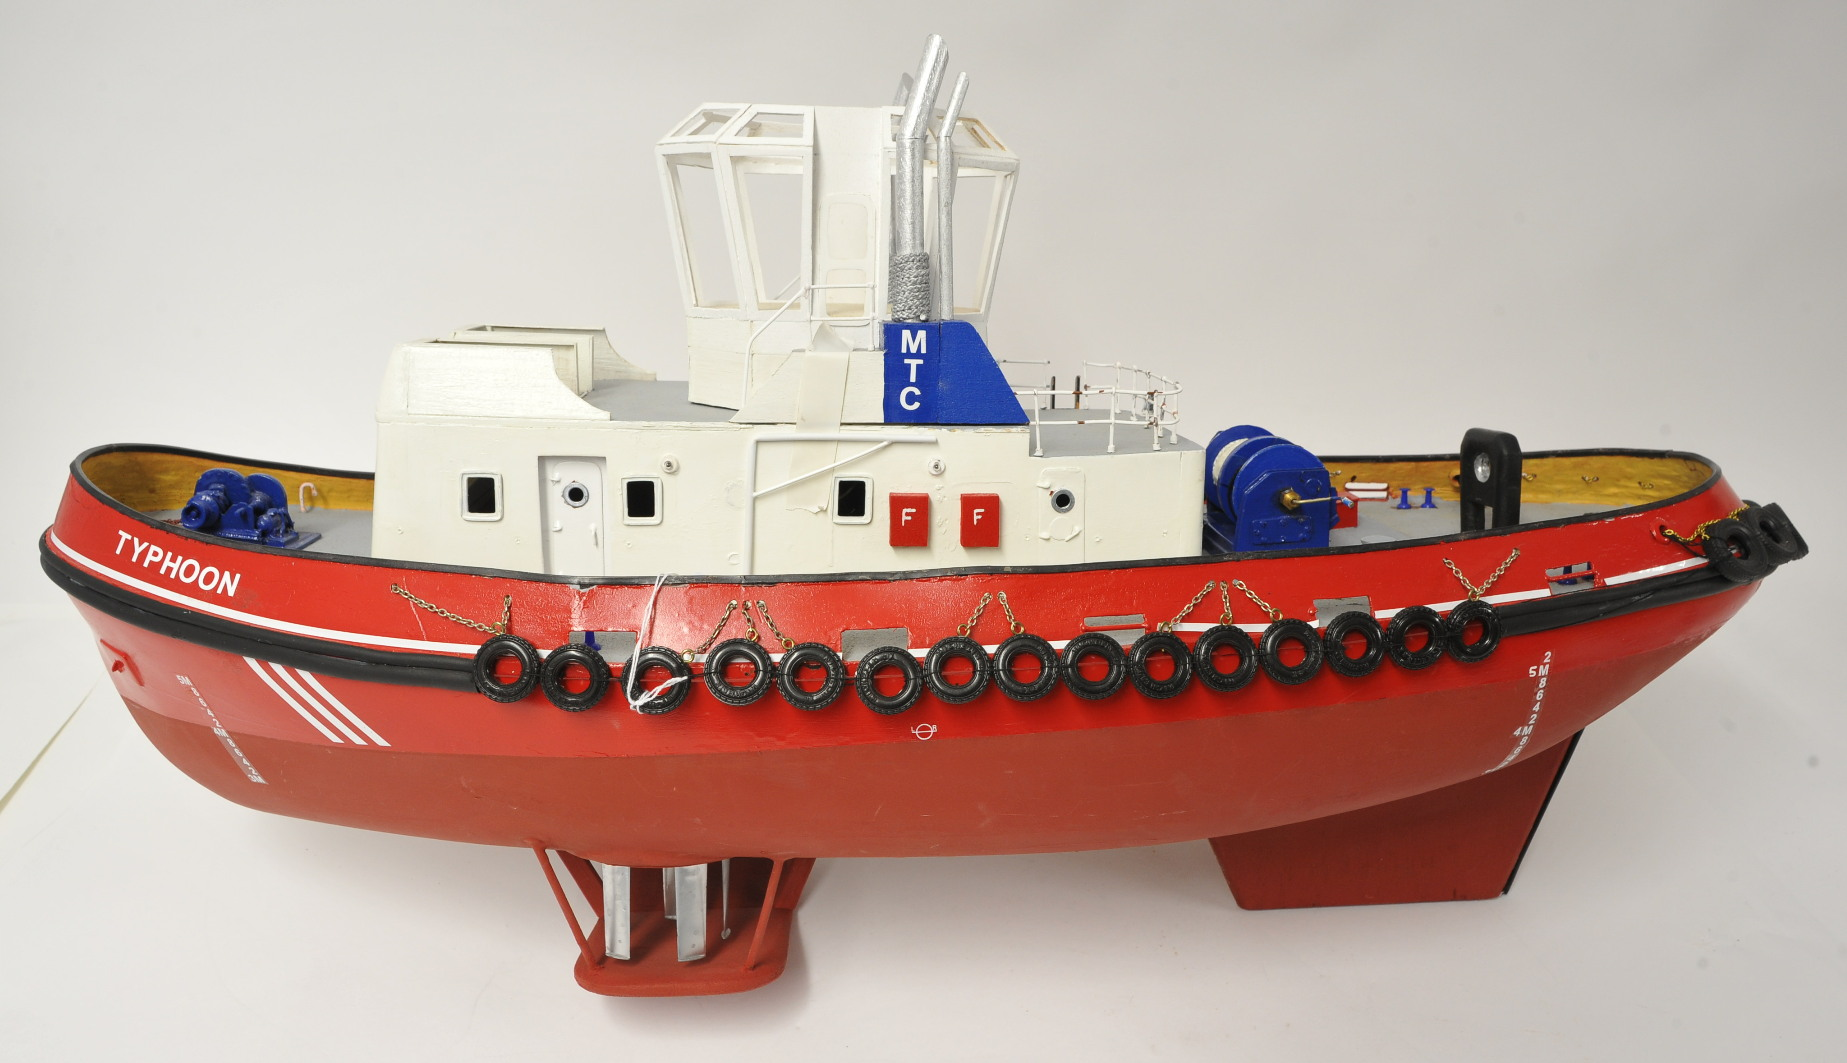 A Scale Model Tug Boxed Voith Schneider Twin Tug 1 32 With Vertical Propulsion System And Twin P